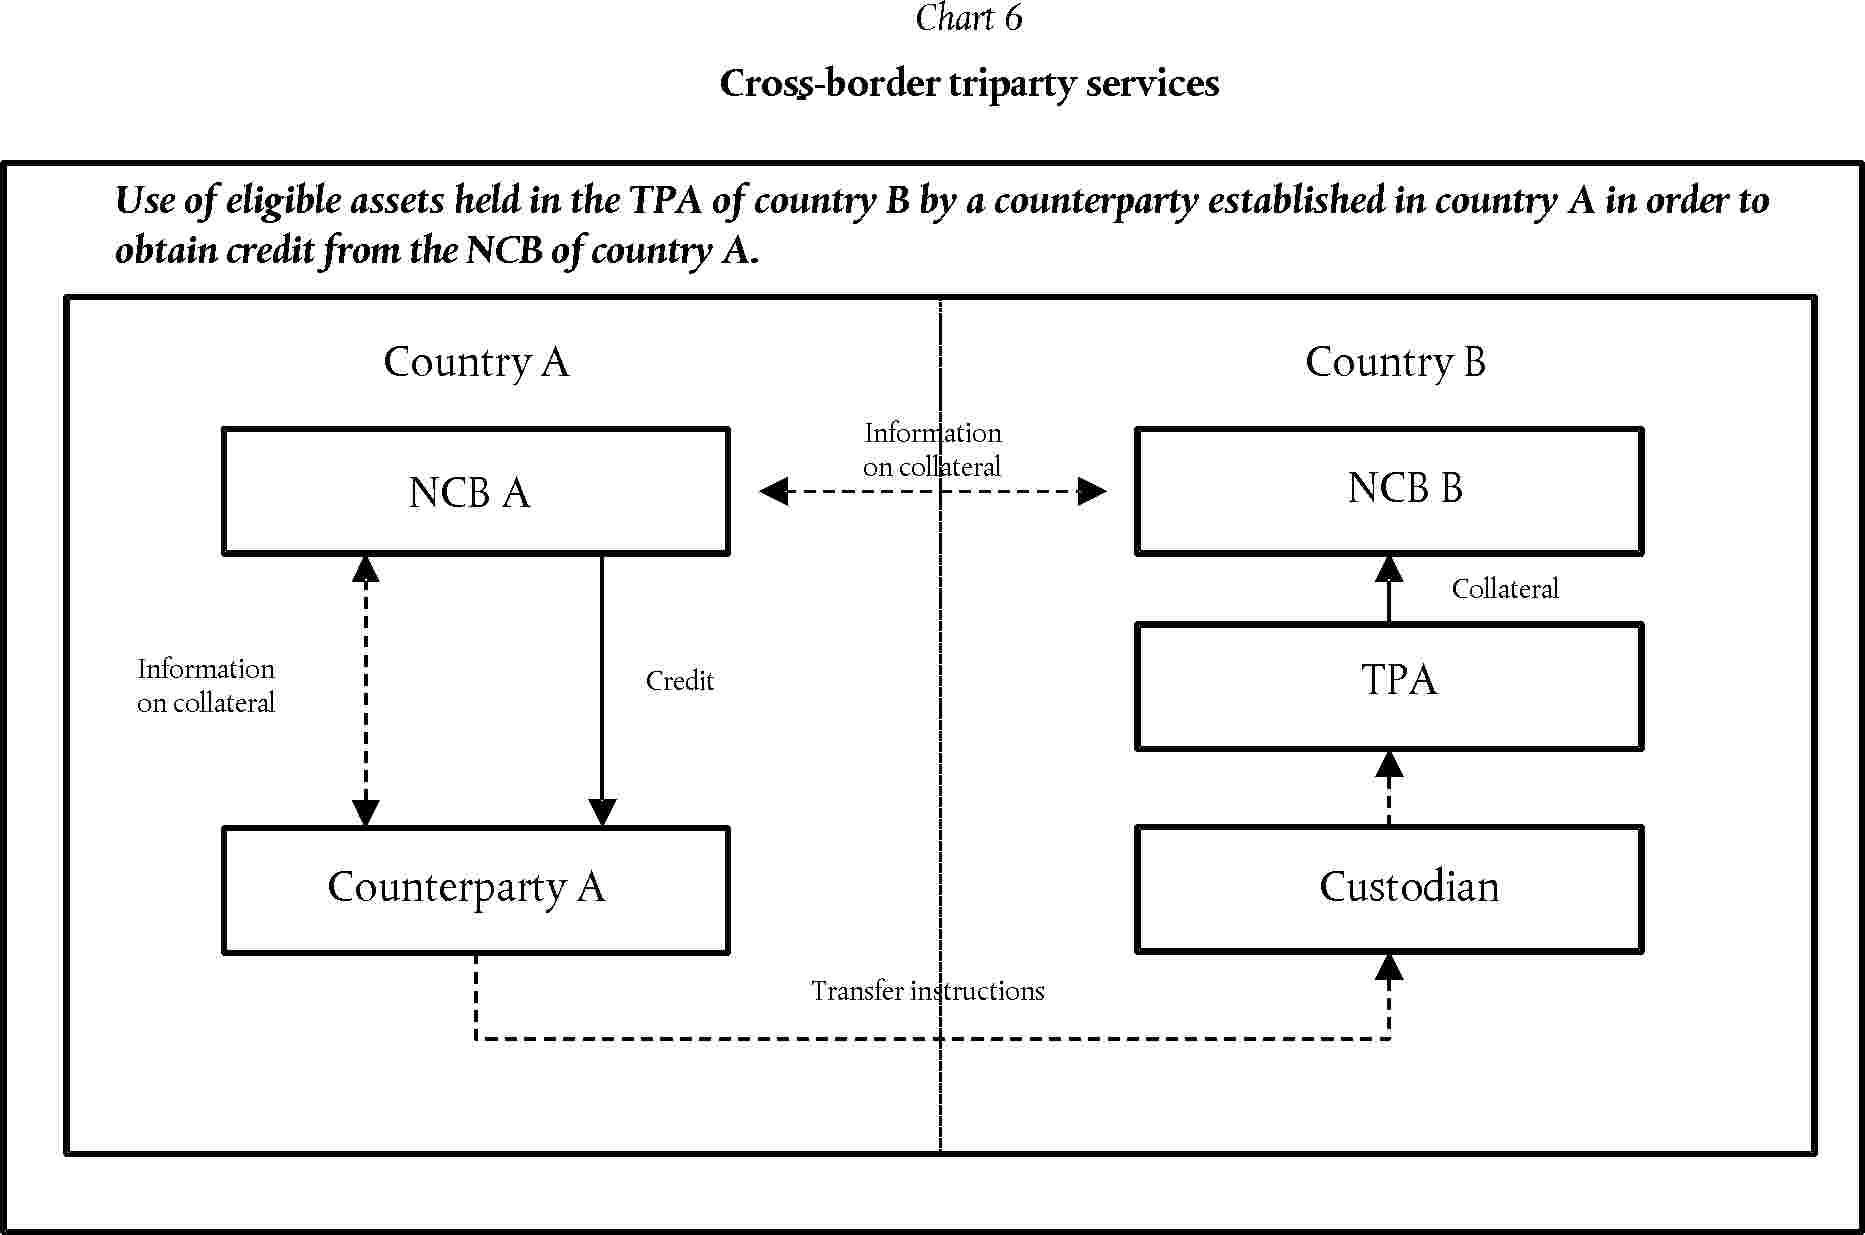 Eur lex 02011o0014 20140605 en eur lex note the arrow information on collateral between counterparty a and ncb a may not be relevant with certain tpas depending on the contractual model nvjuhfo Choice Image